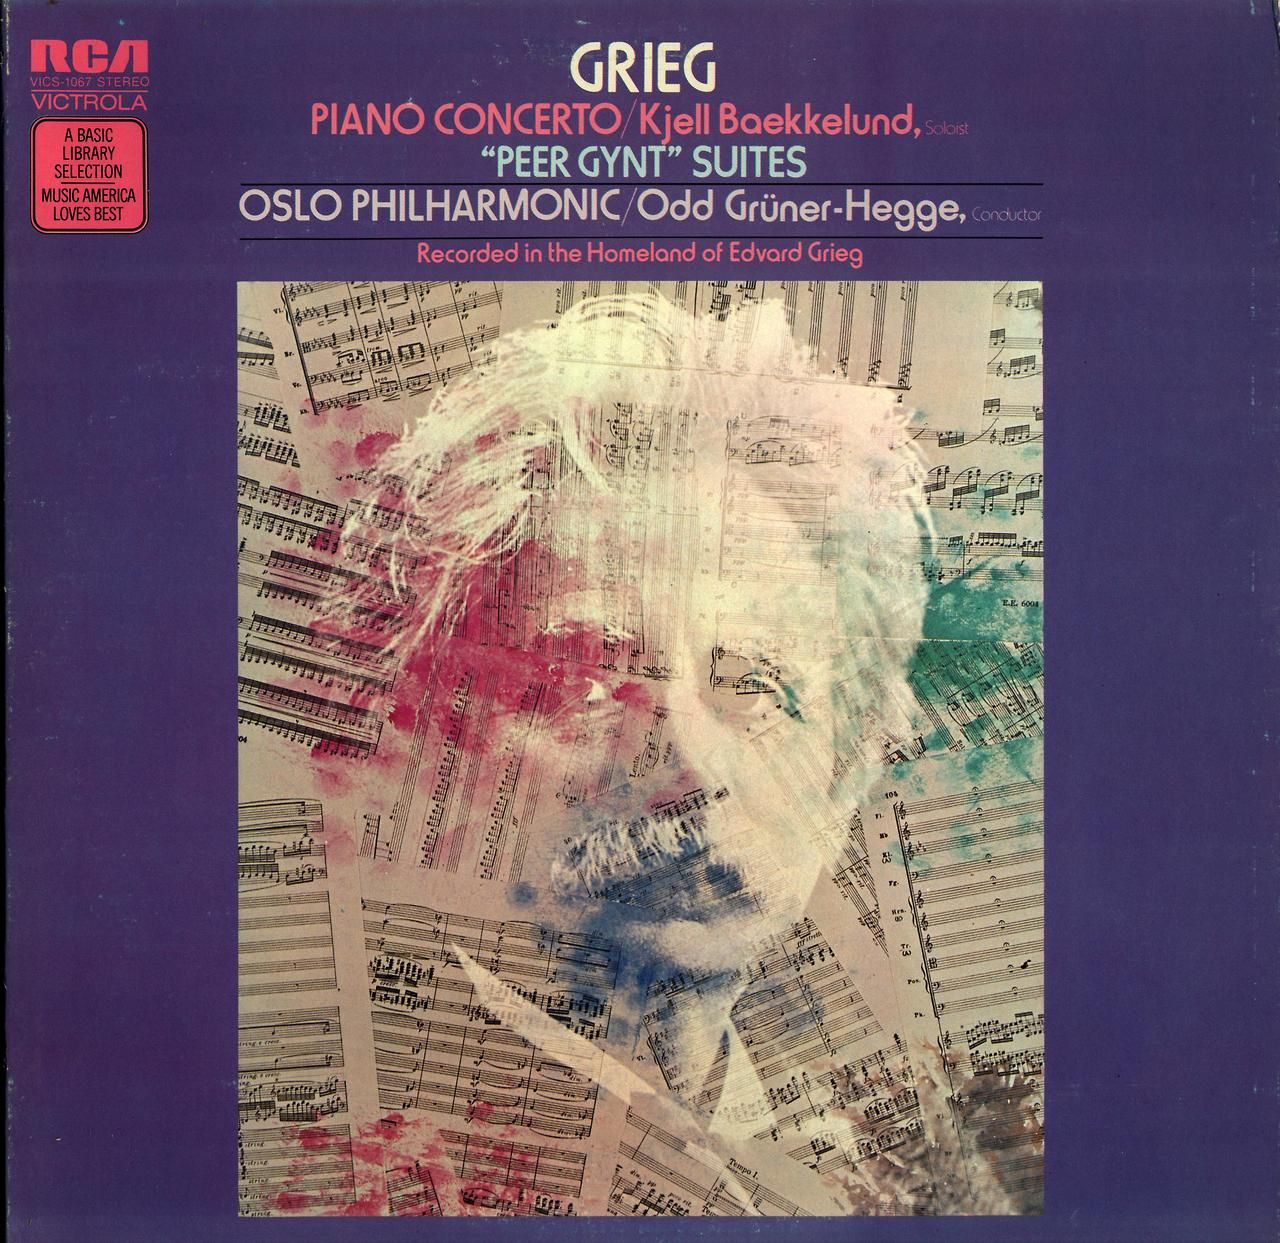 "Grieg Piano Concerto Kjell Baekkelund ""Peer Gynt"" Suites Featuring Oslo Philharmonic conducted by Odd Gruner-Hehhe."